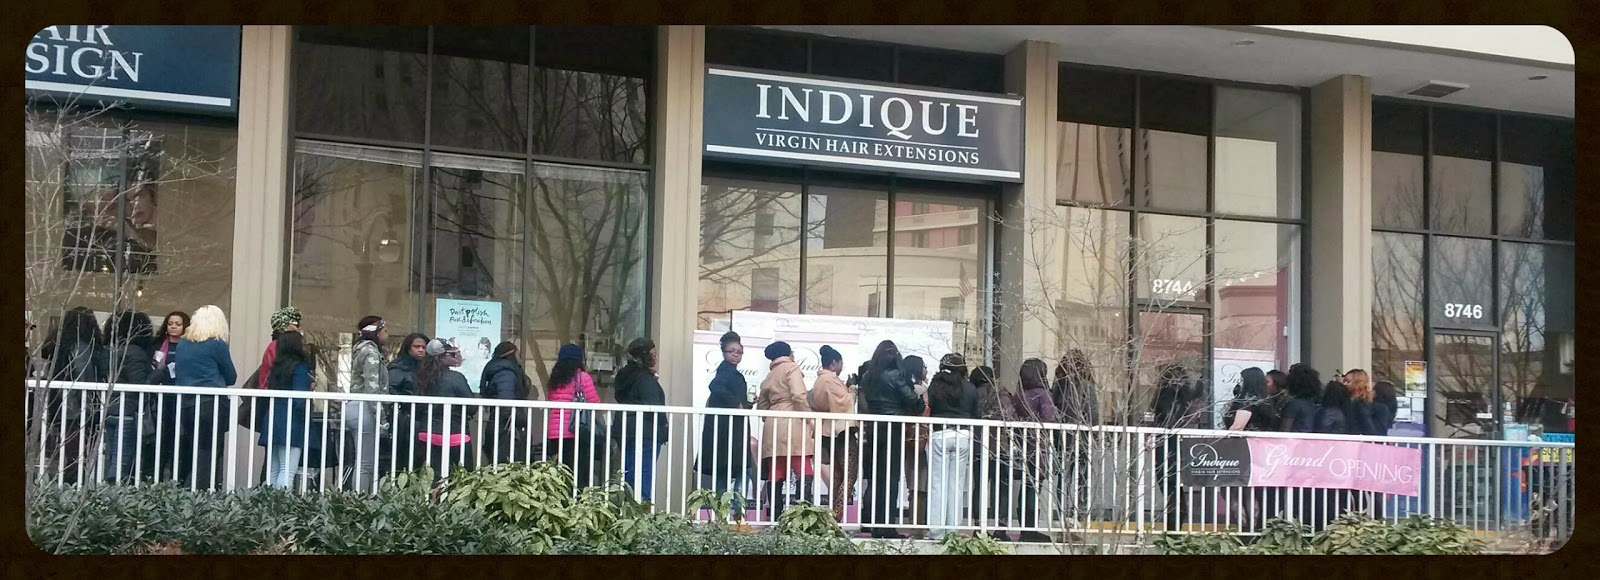 Velocity Dmv Indique Hair Launches A Maryland Boutique Location